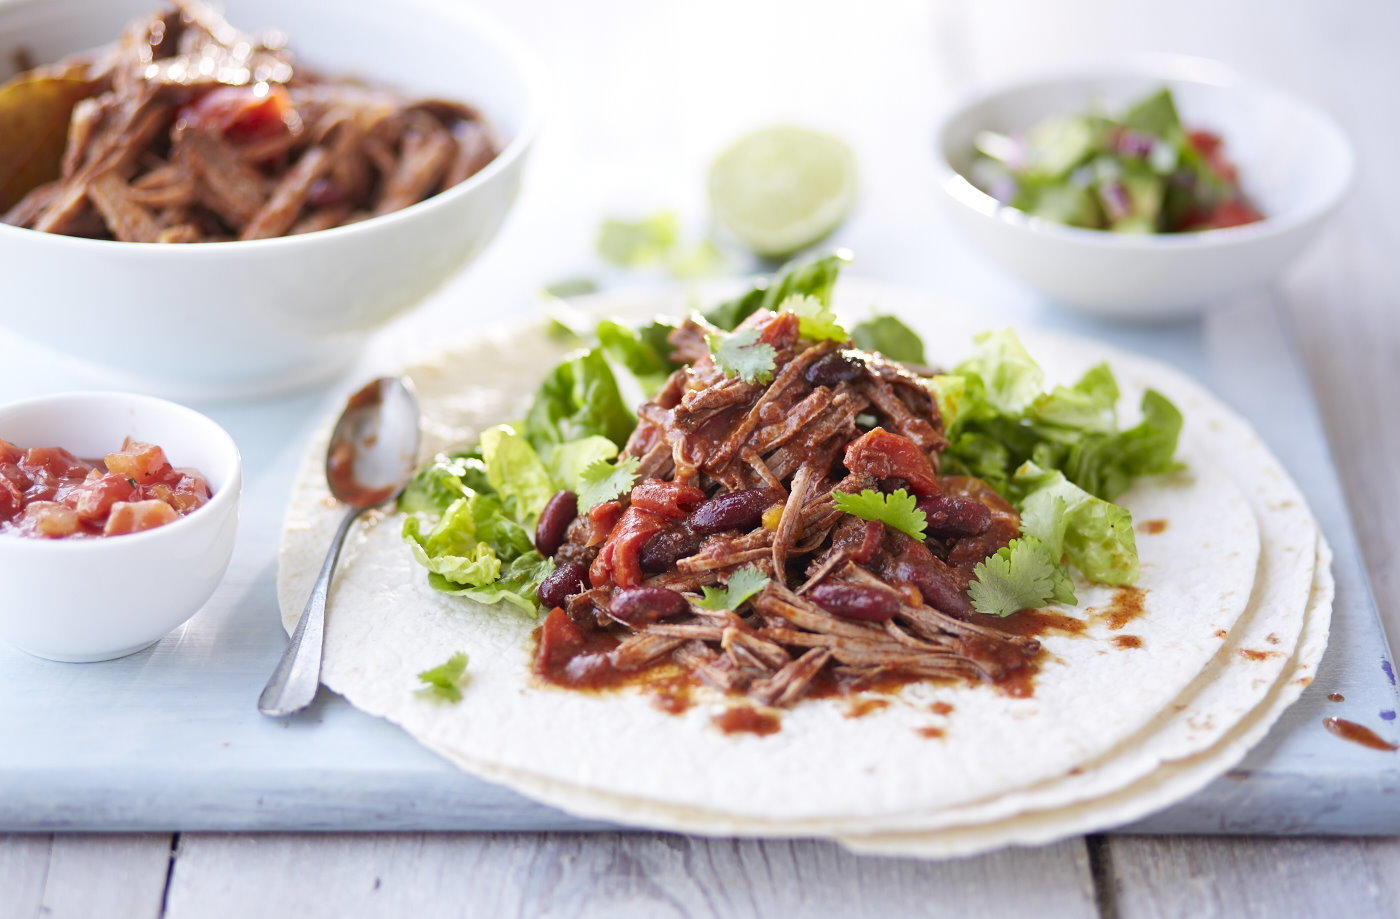 Brisket chilli con carne recipe